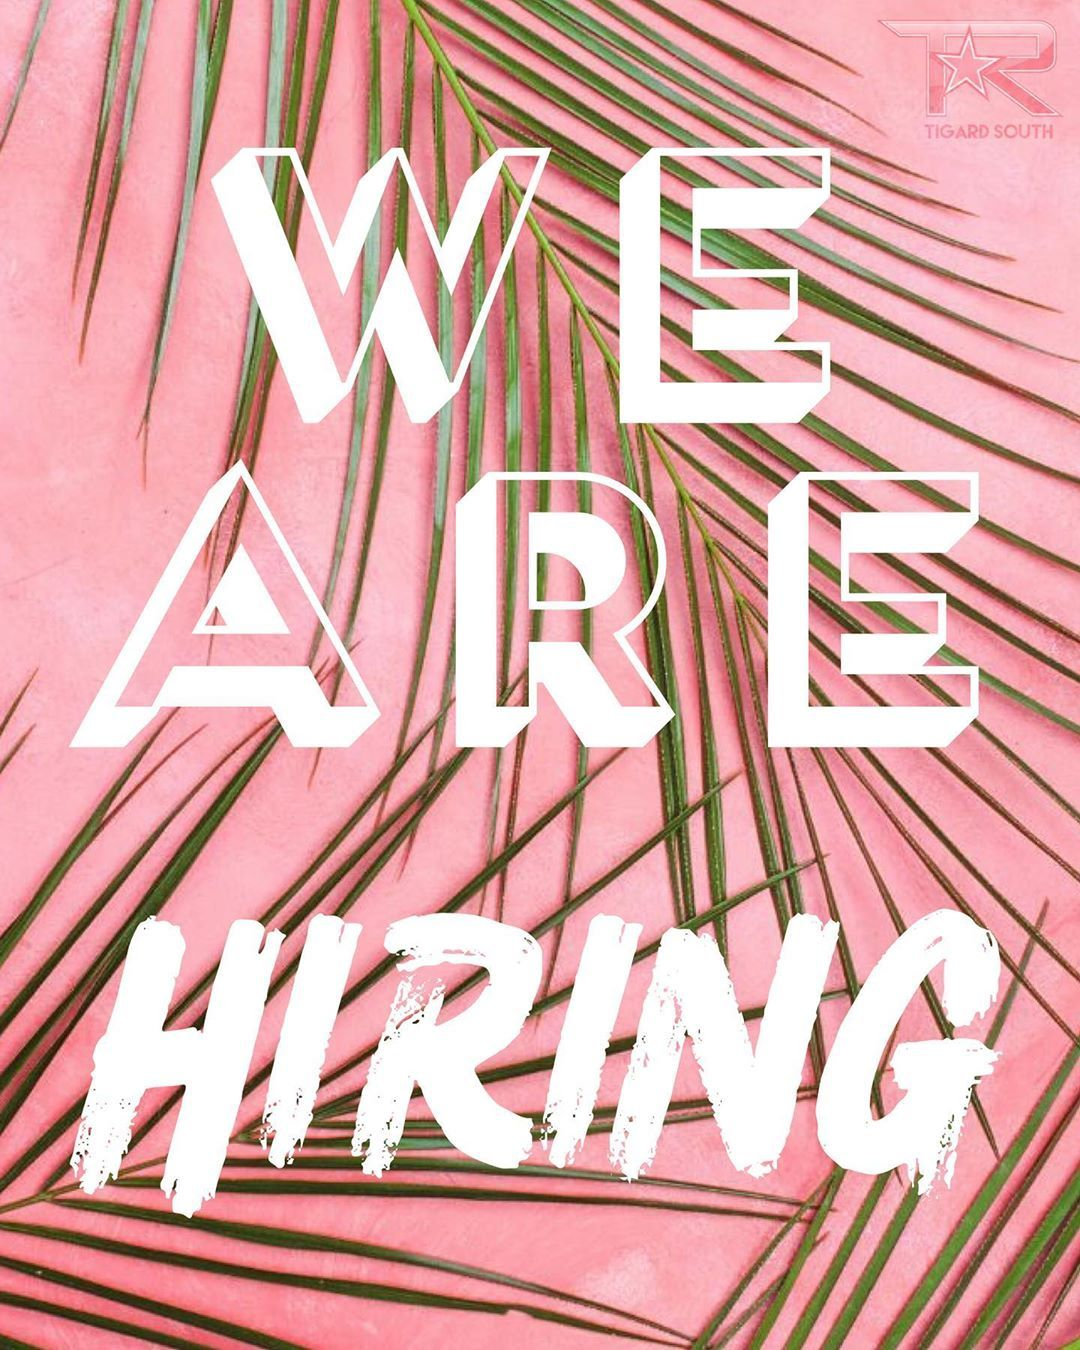 WE ARE HIRING TR Tigard South is looking for outgoing and